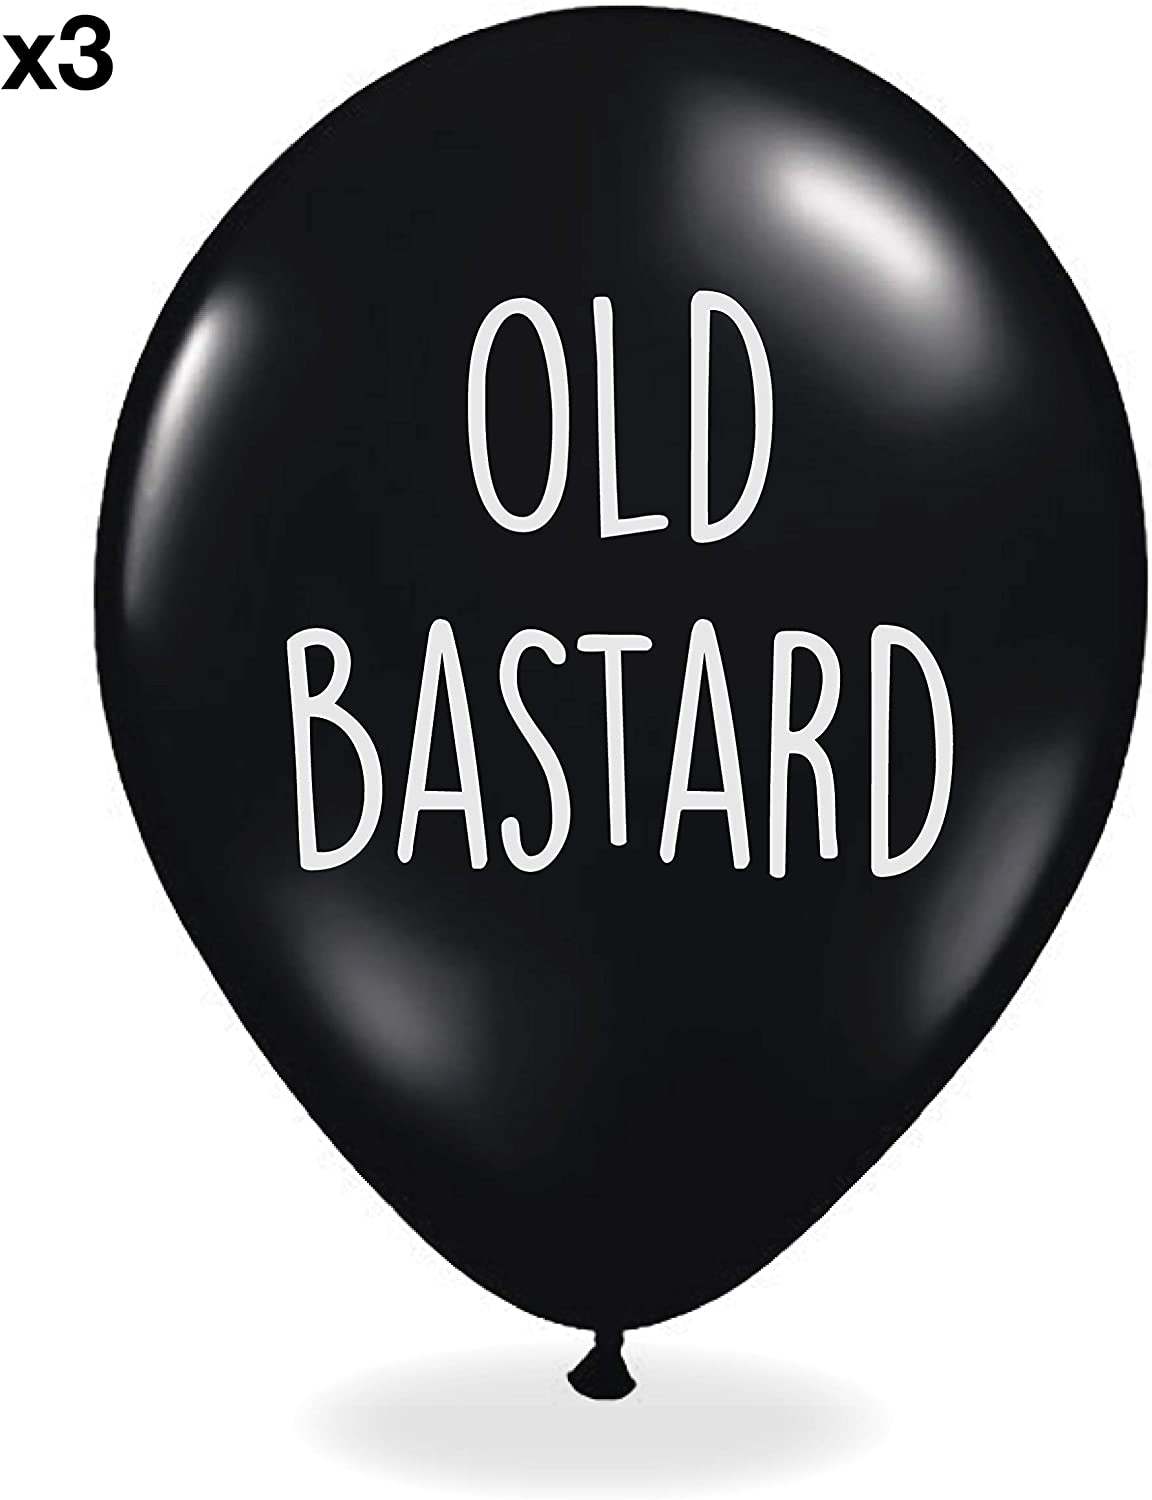 Abusive Balloons - oddgifts.com